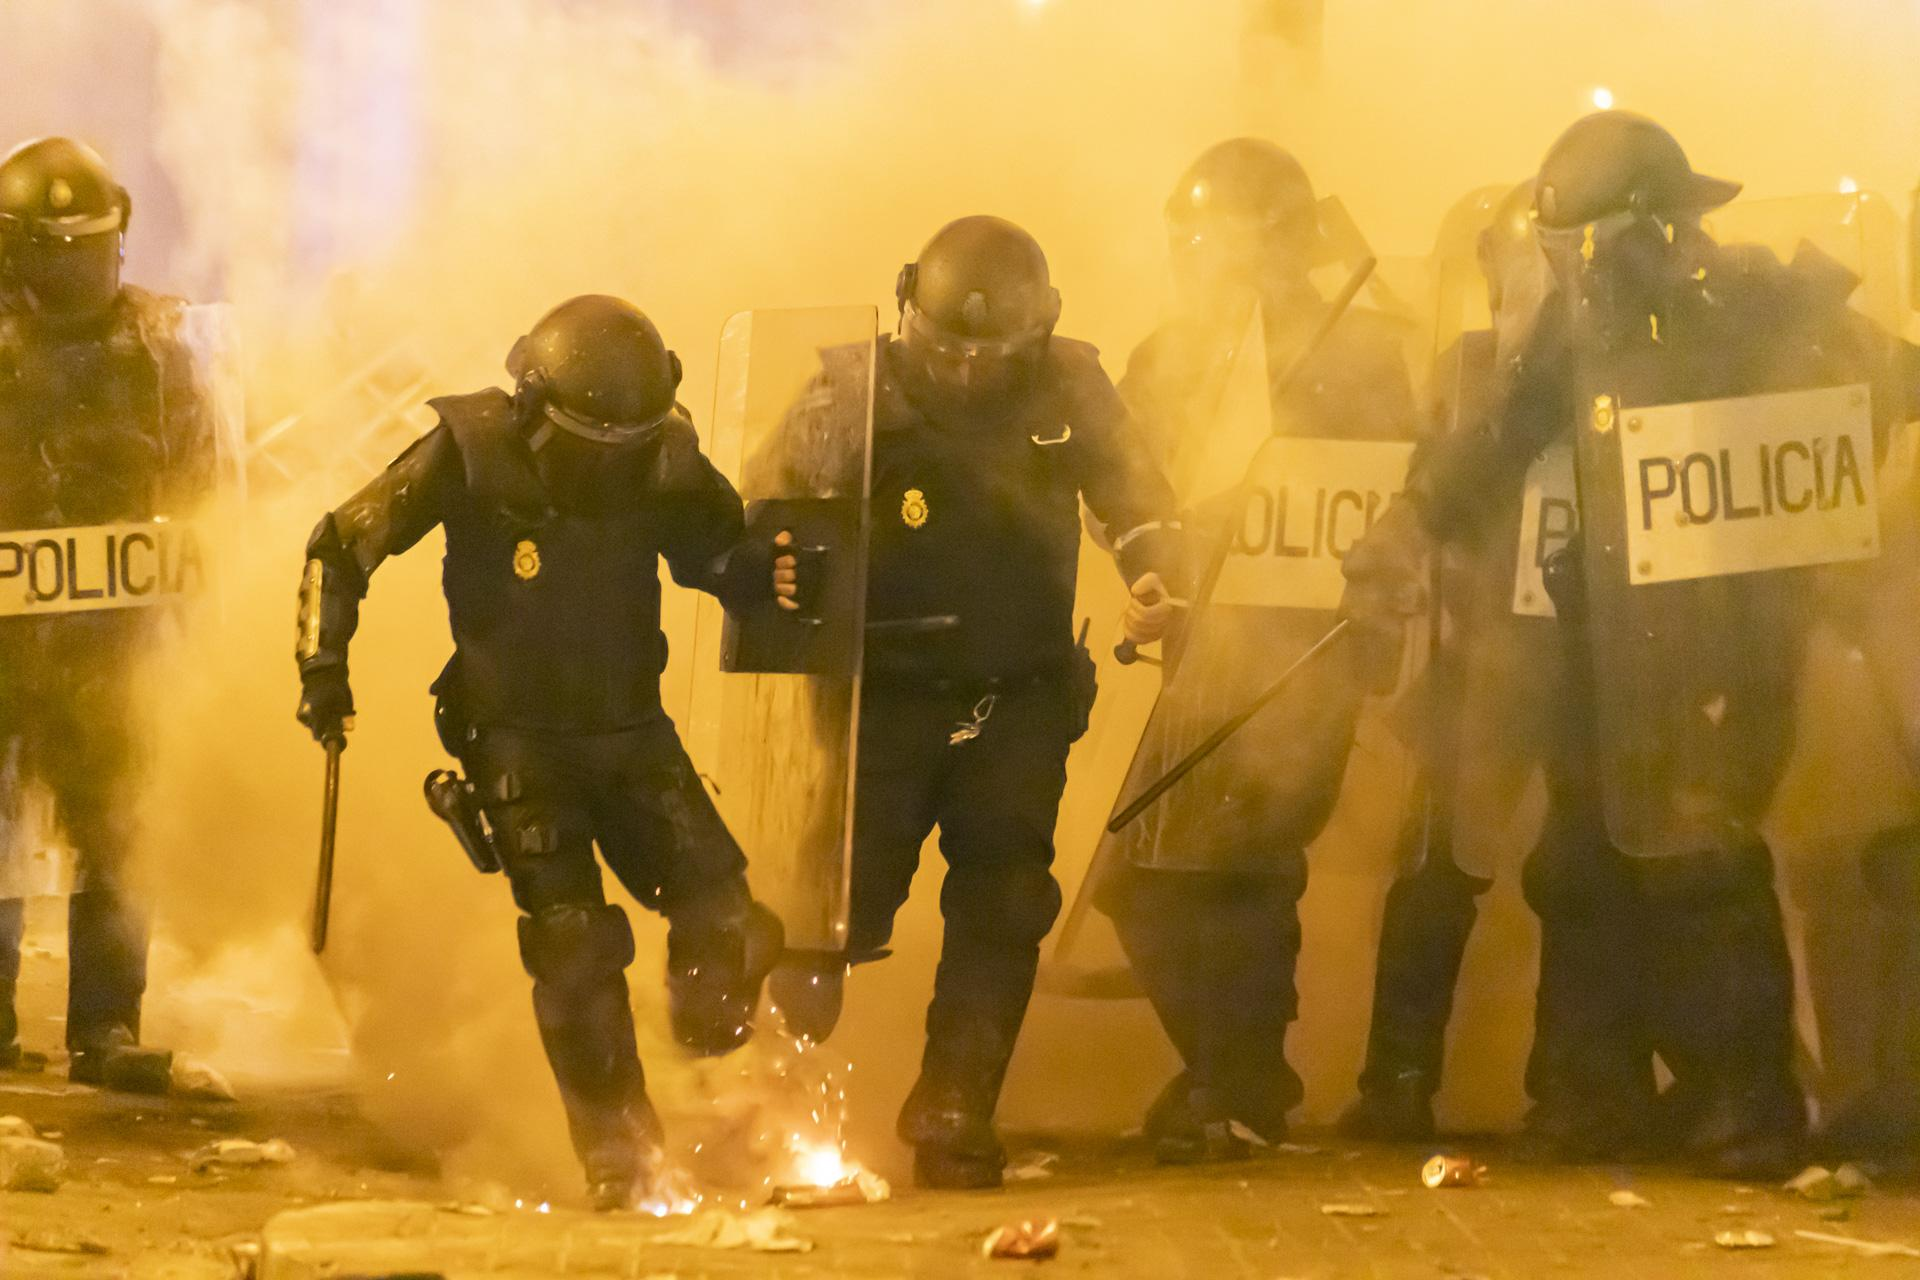 A row of riot police receives firecrackers and smoke bombs while the anti-riot teams tried to break up groups of protesters who had originated protests outside the Spanish National Police station and continued inUrquinaona square . October 2019, Barcelona, Spain.